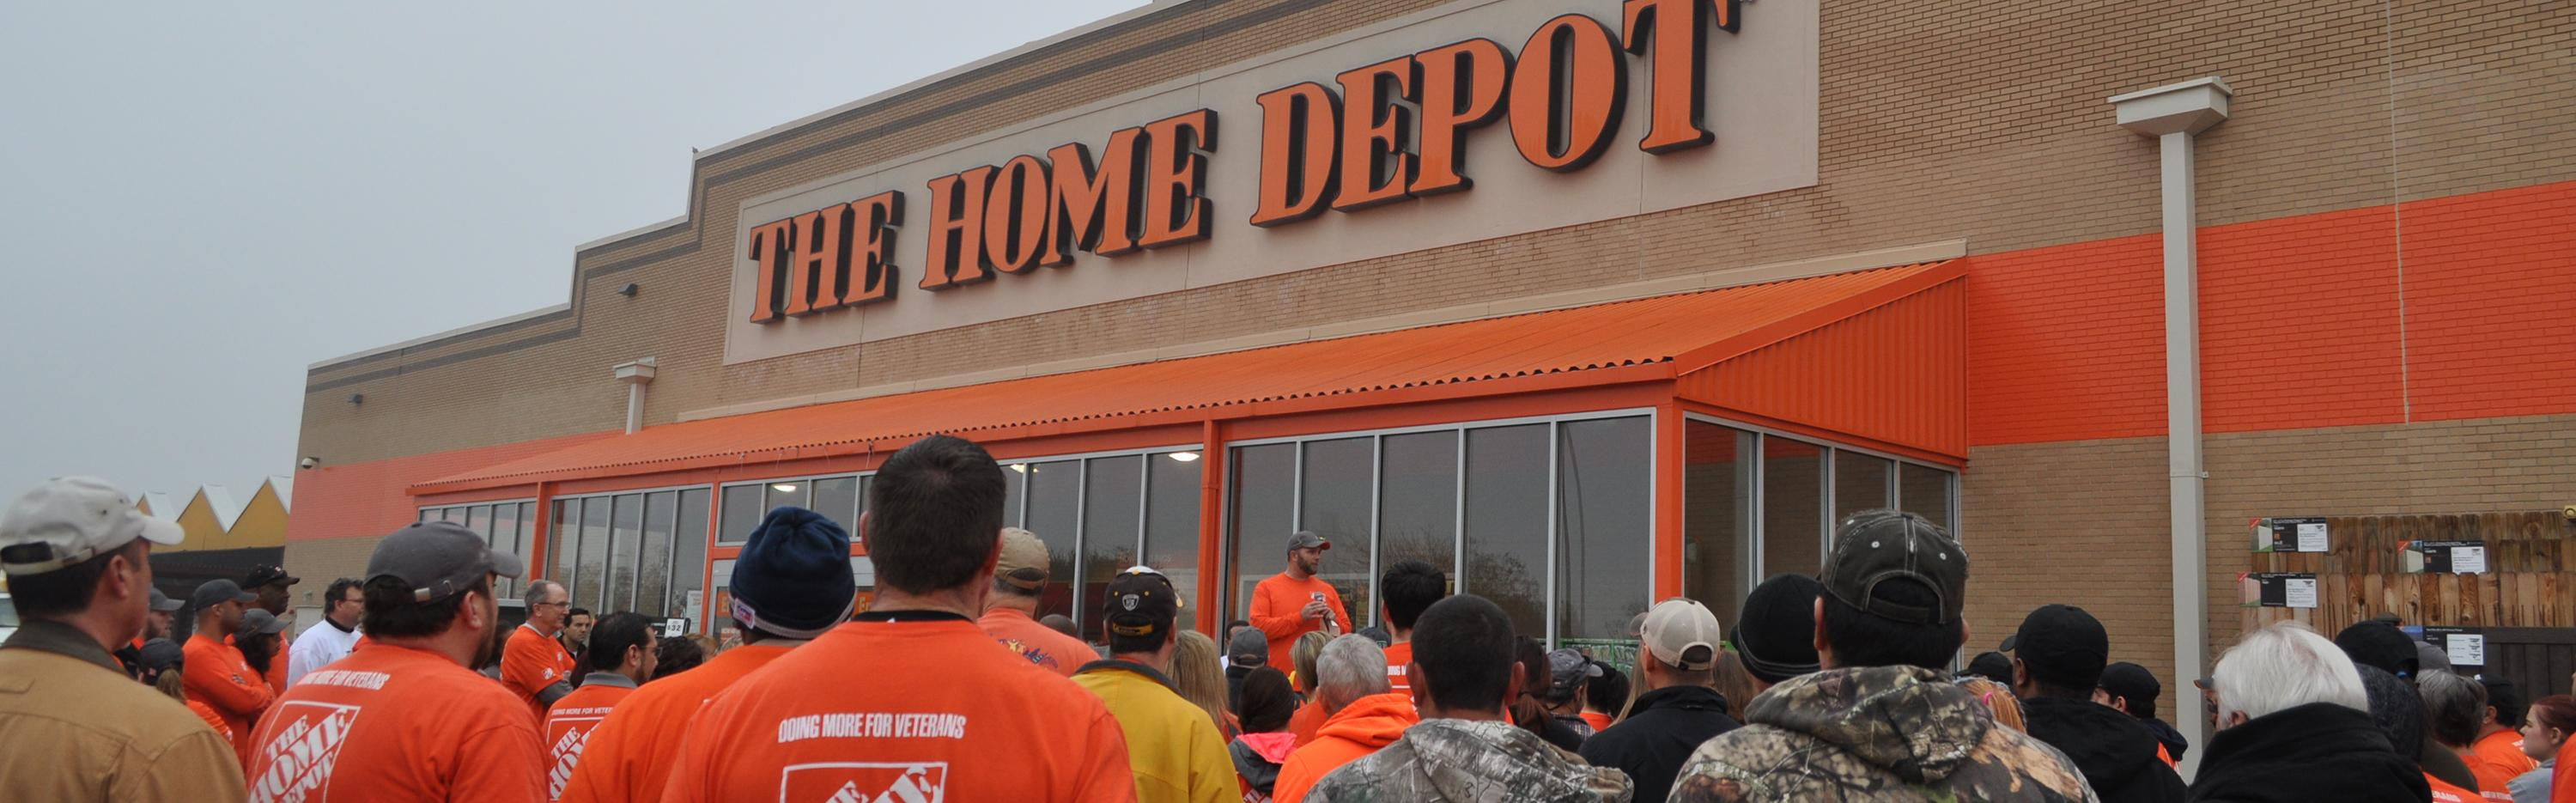 Home Depot store in Rowlett, TX